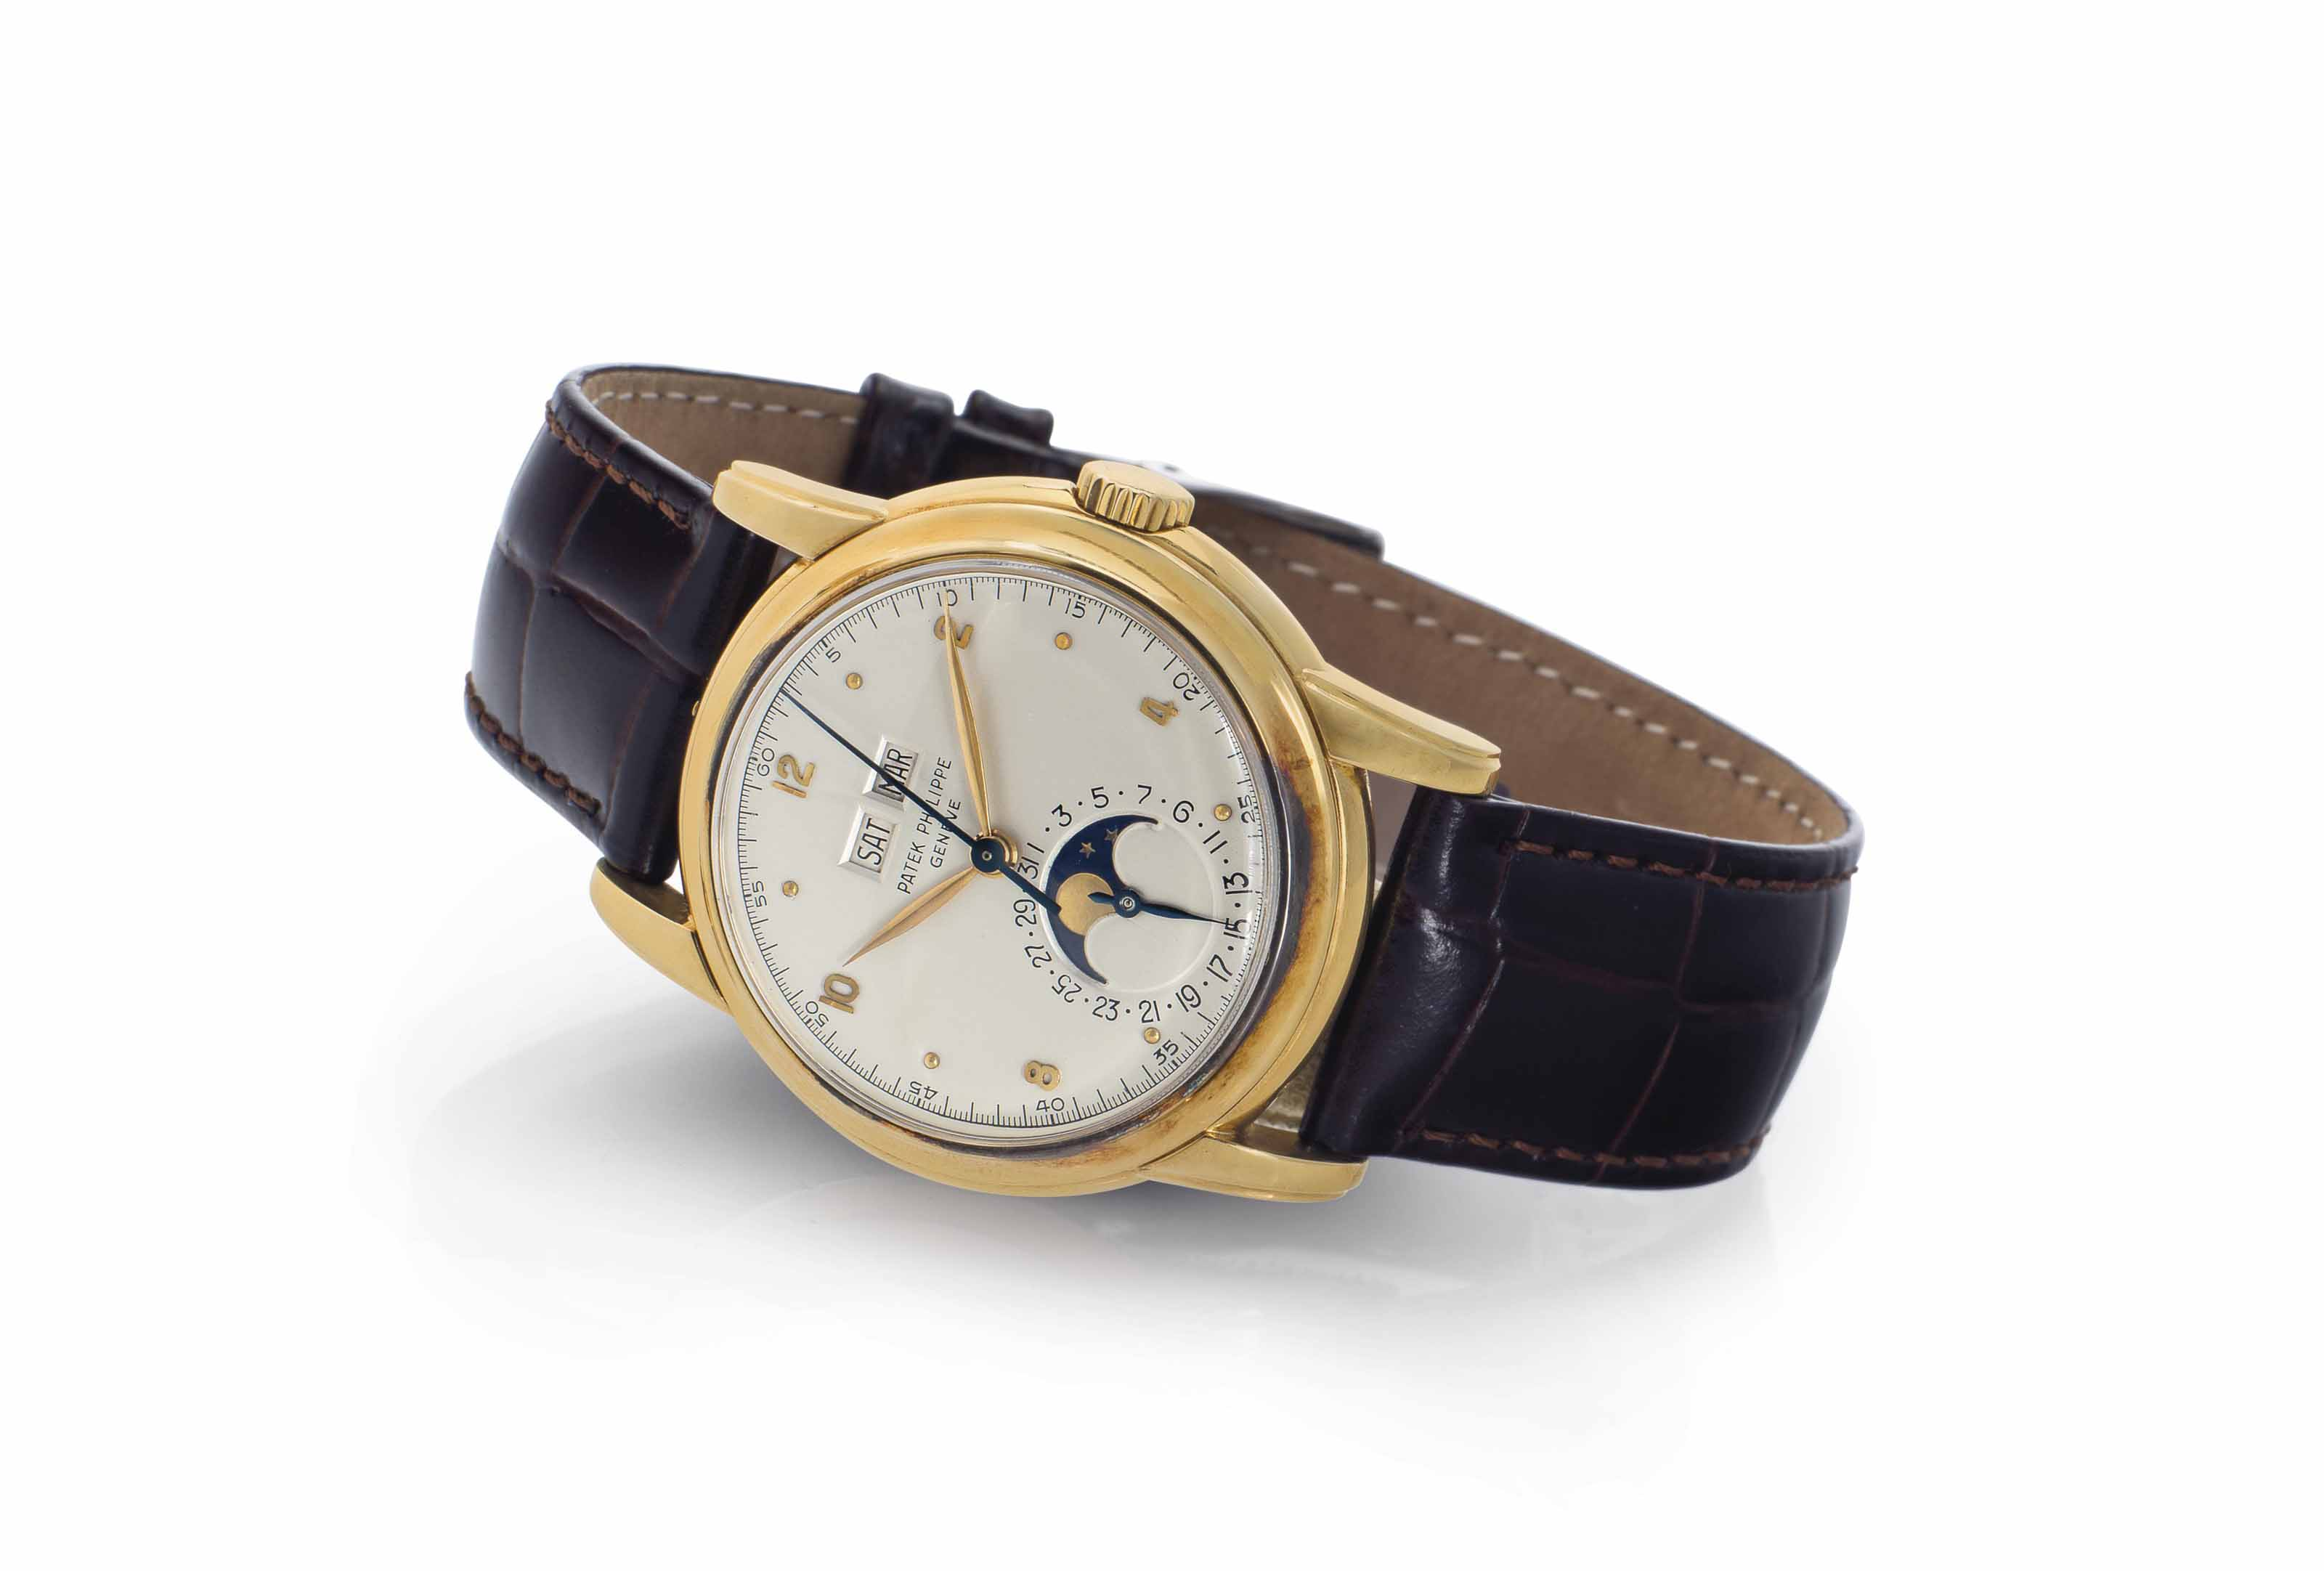 Patek Philippe. A Very Fine and Rare 18k Gold Perpetual Calendar Wristwatch with Center Seconds and Moon Phases